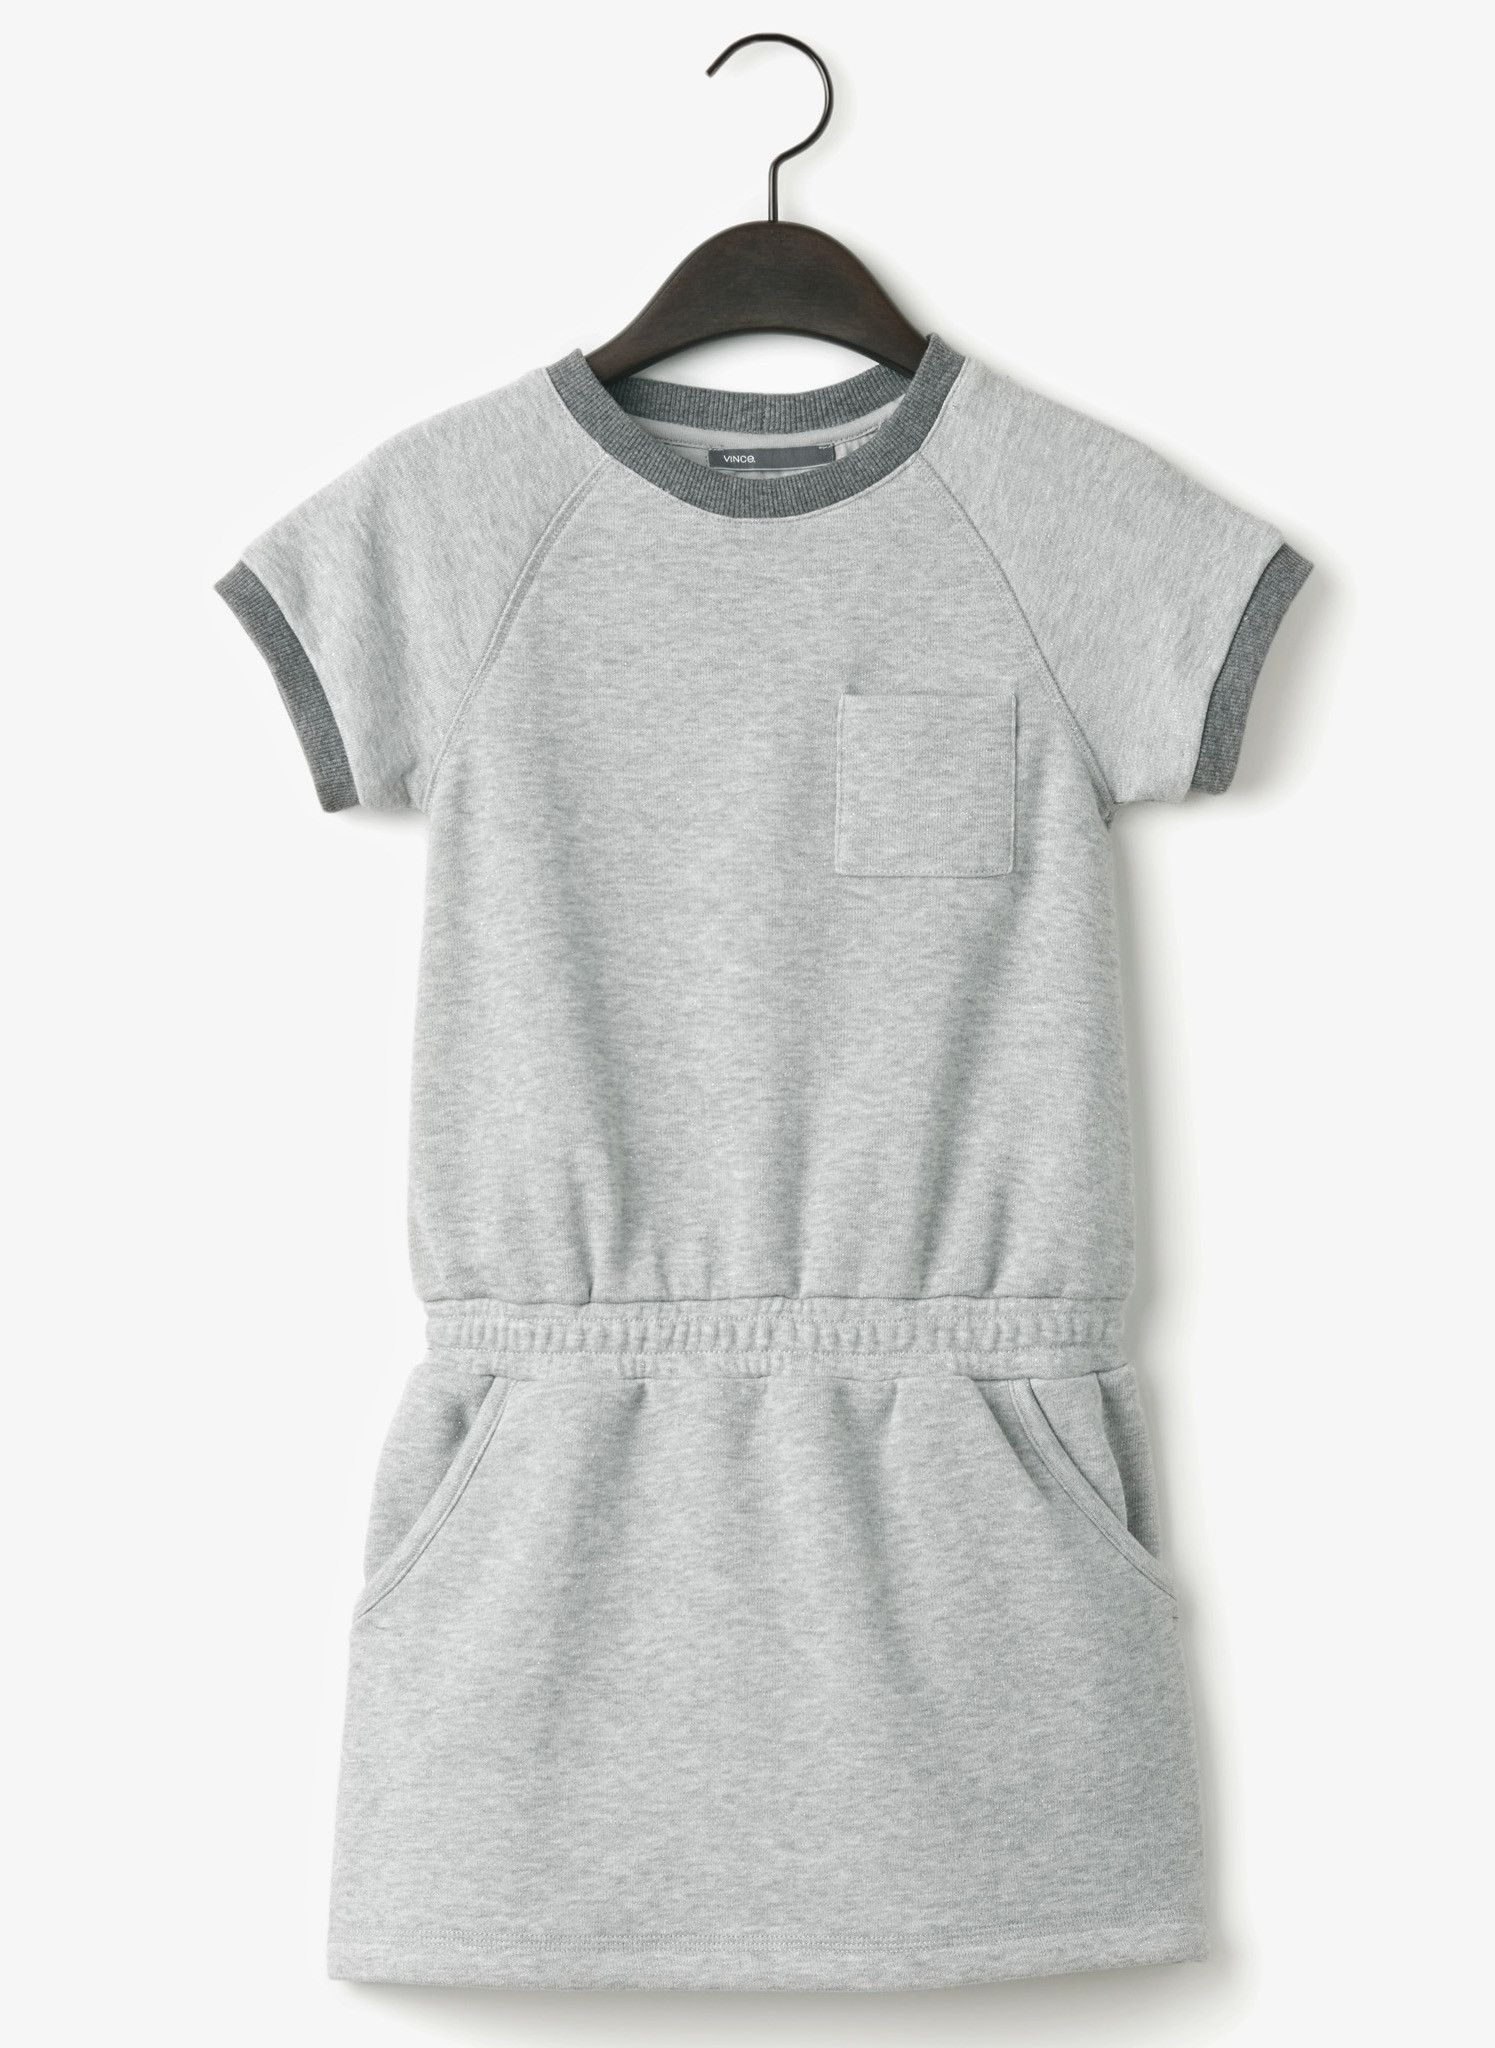 Vince girls french terry dress heather grey final french terry